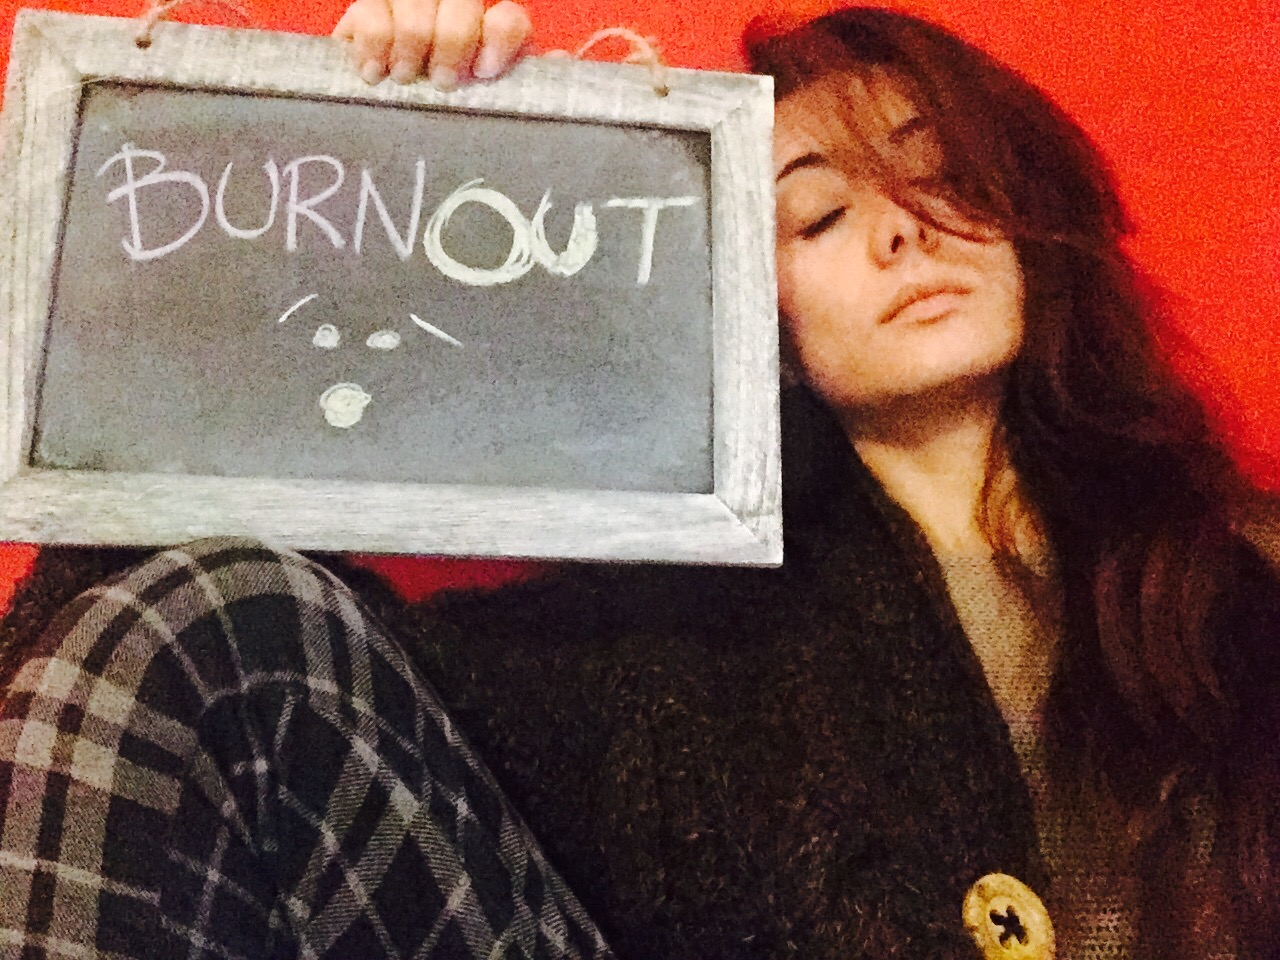 BLOGGING BURNOUT: what is it and how to deal with it?